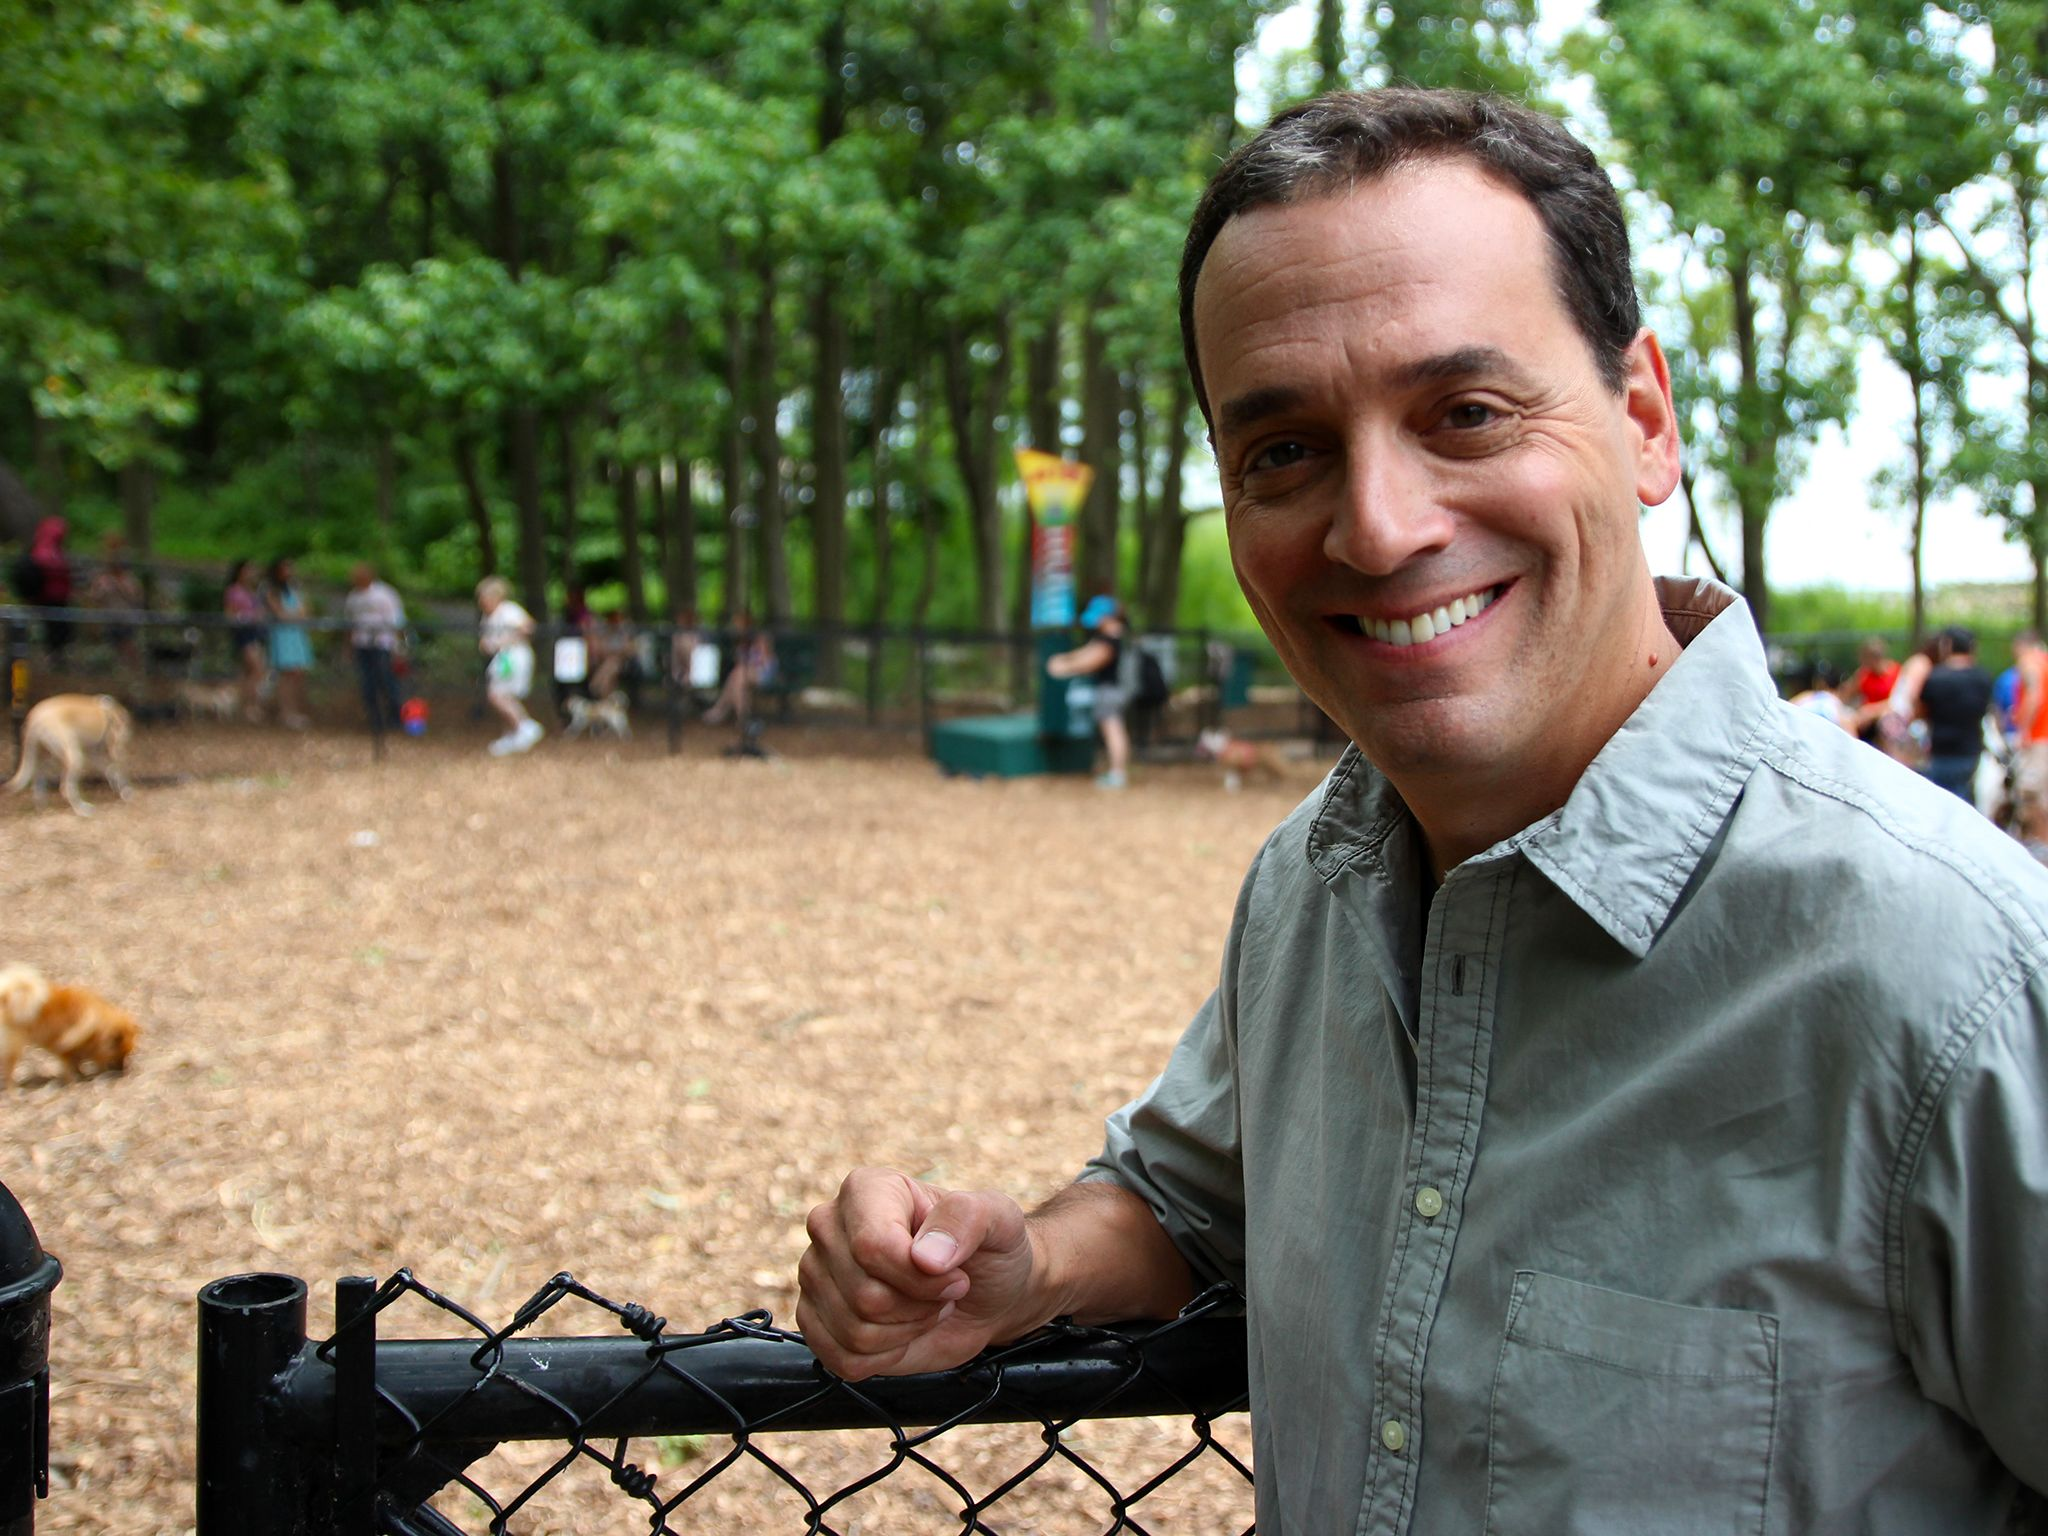 Staten Island, NY, USA: Presenter Daniel Pink heads to a dog park to see how the experiments are ... [Photo of the day - نوامبر 2014]